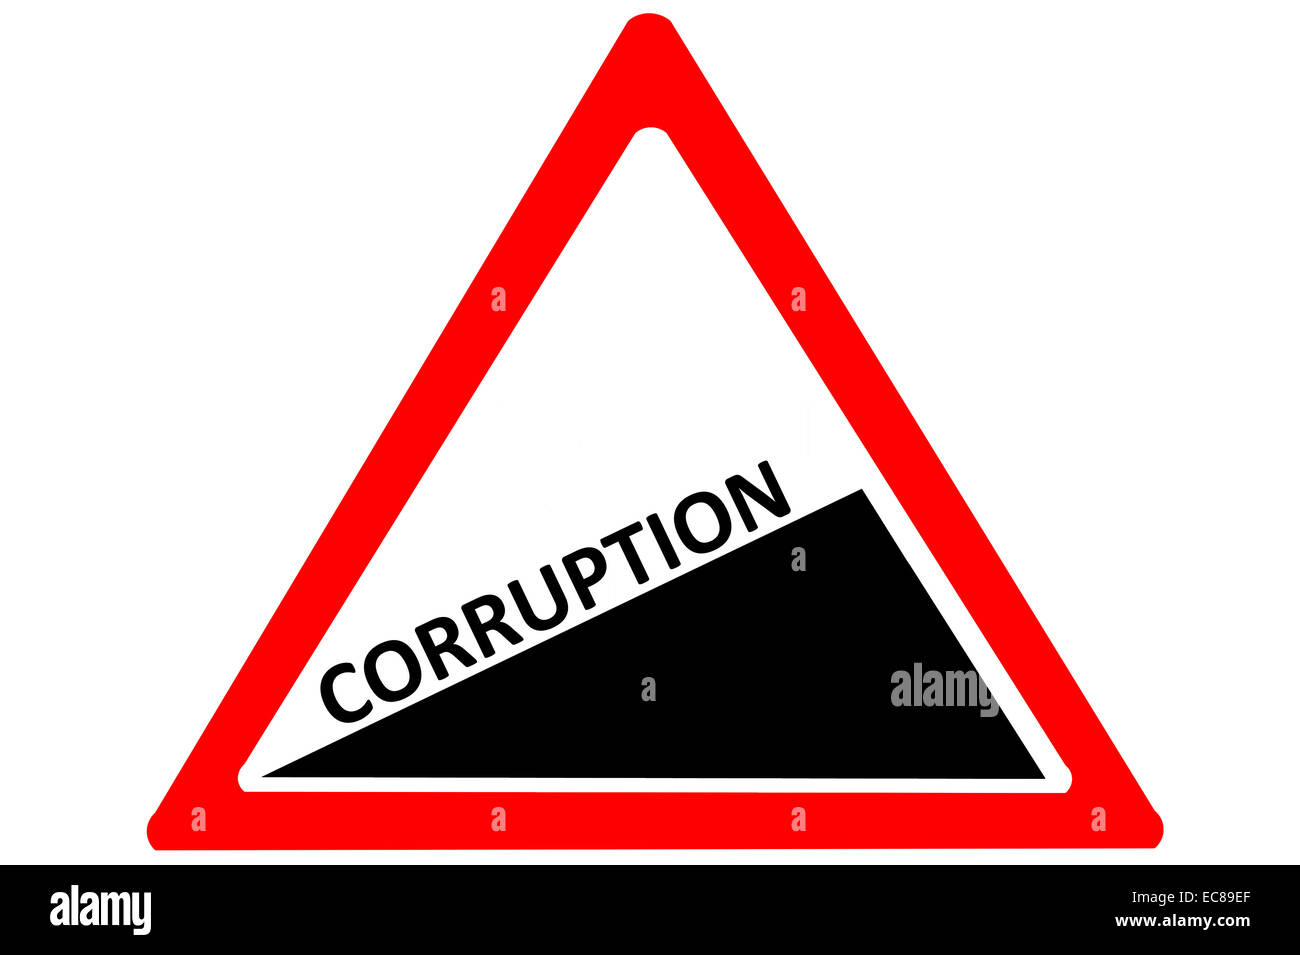 Corruption increasing warning road sign isolated on pure white background - Stock Image